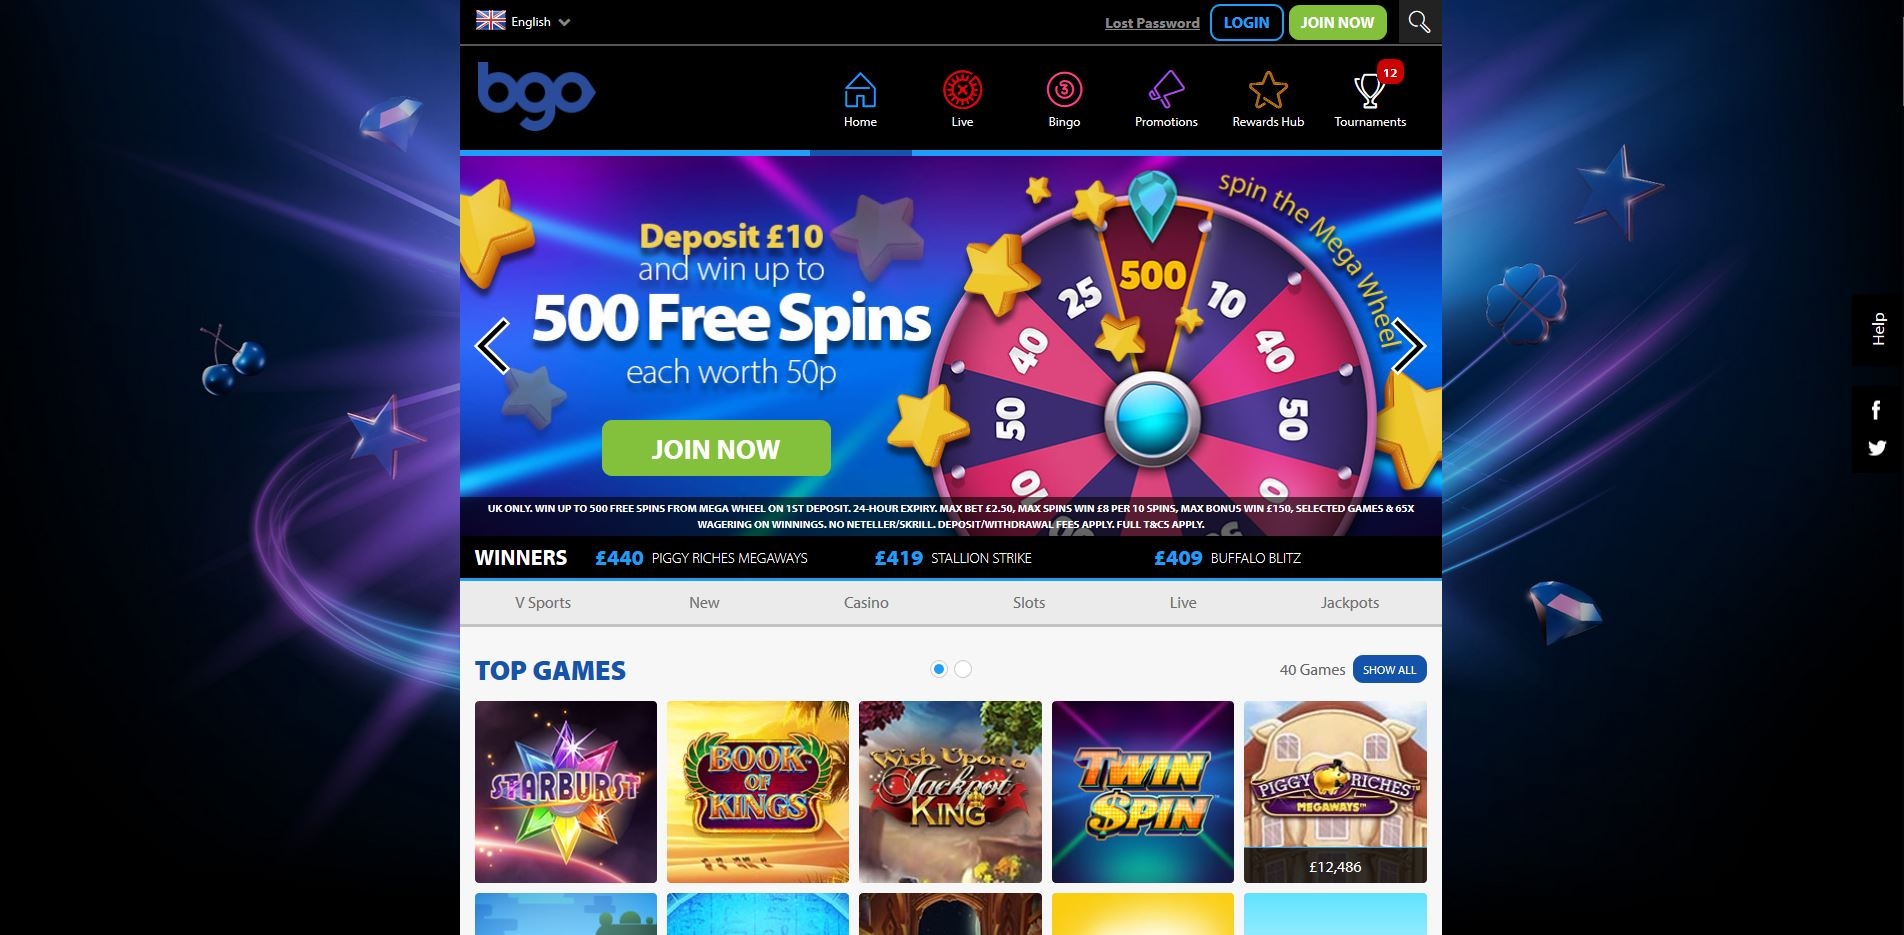 Bgo Casino Reviews